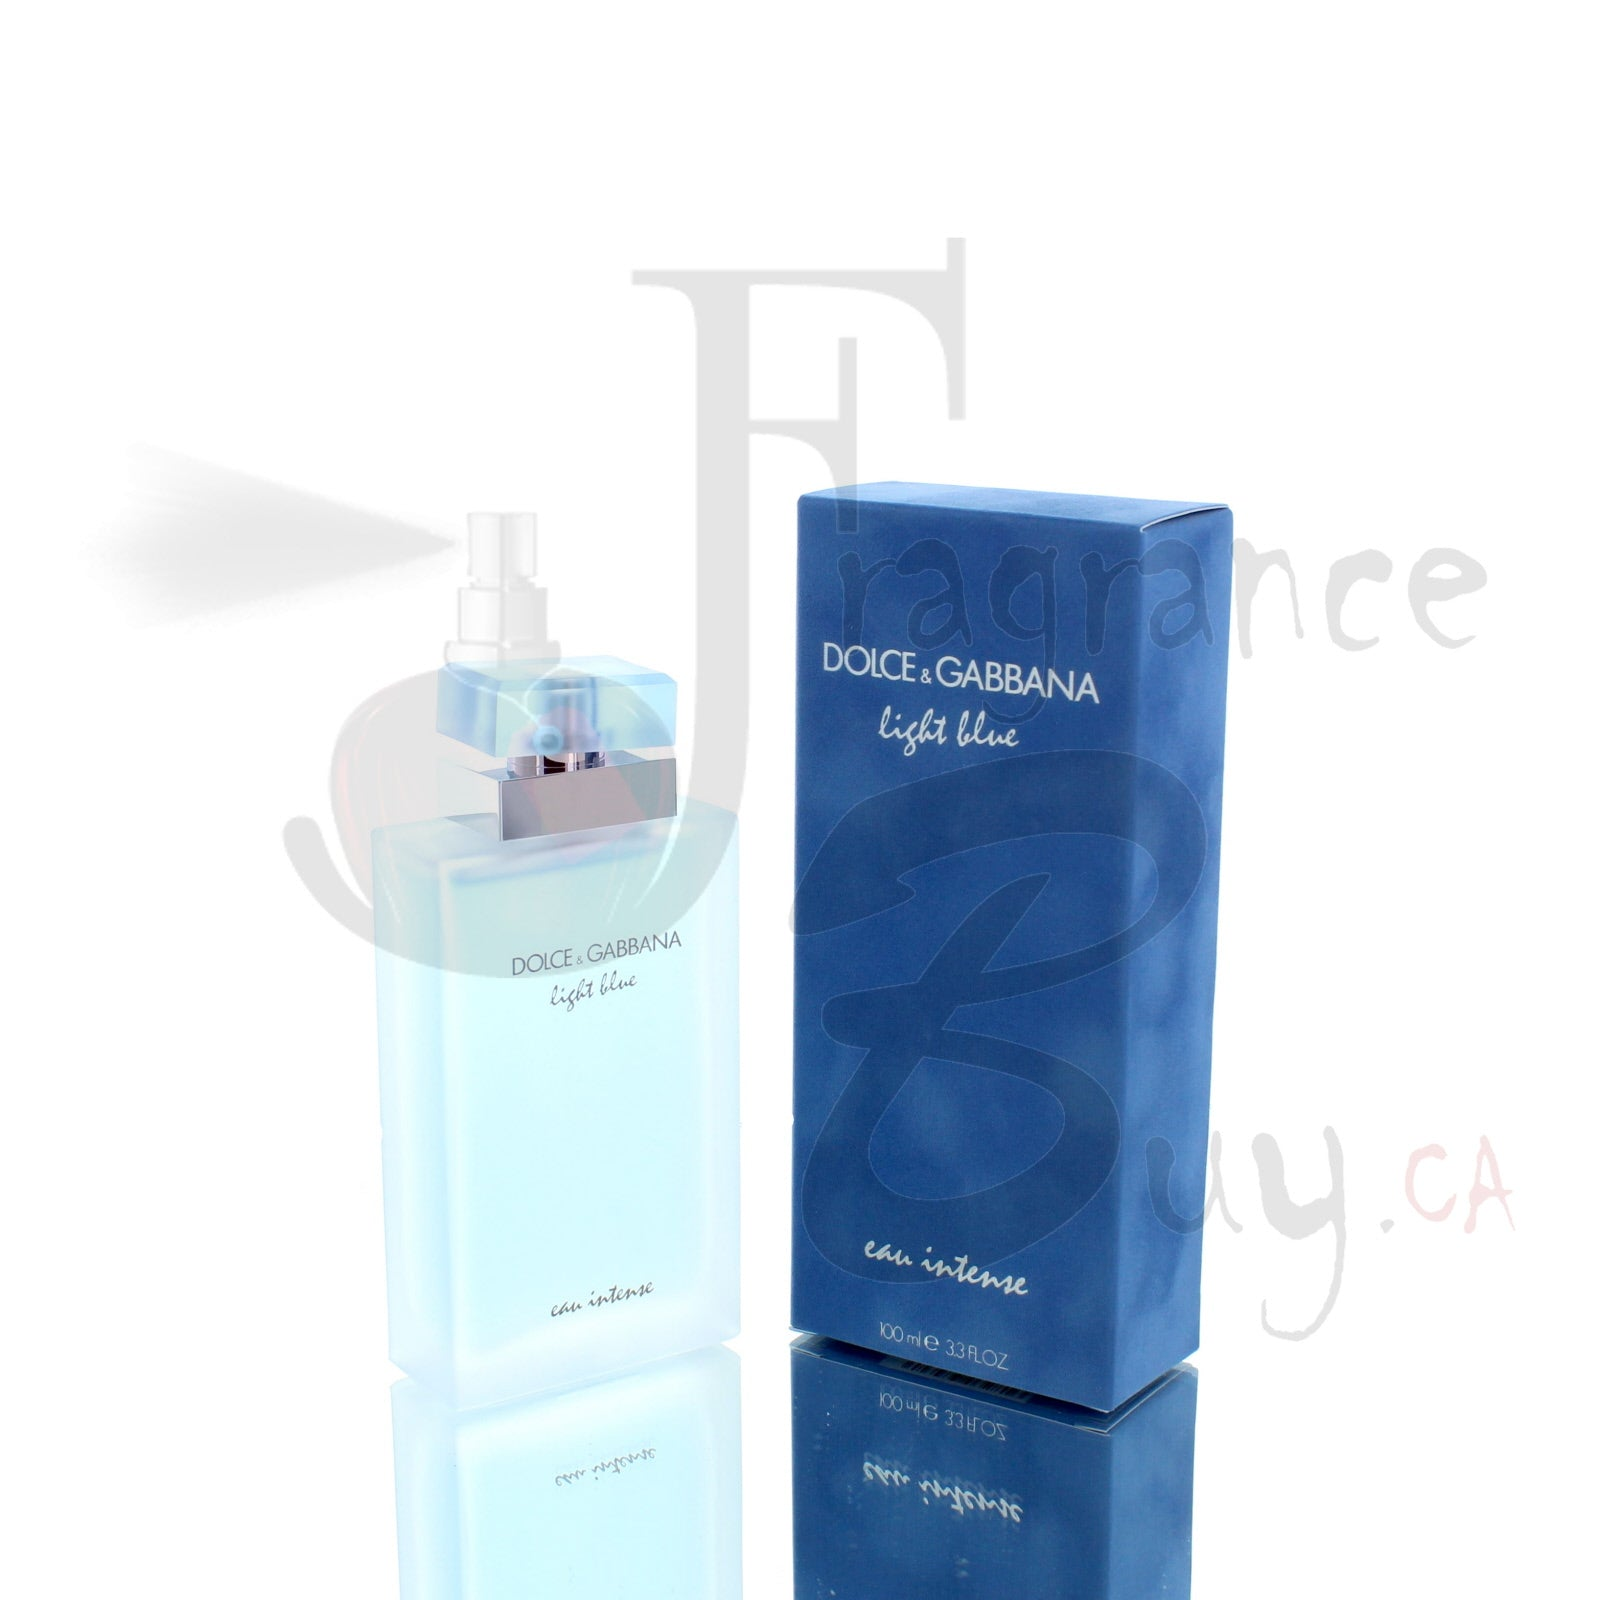 Dolce & Gabbana Light Blue Eau Intense For Woman